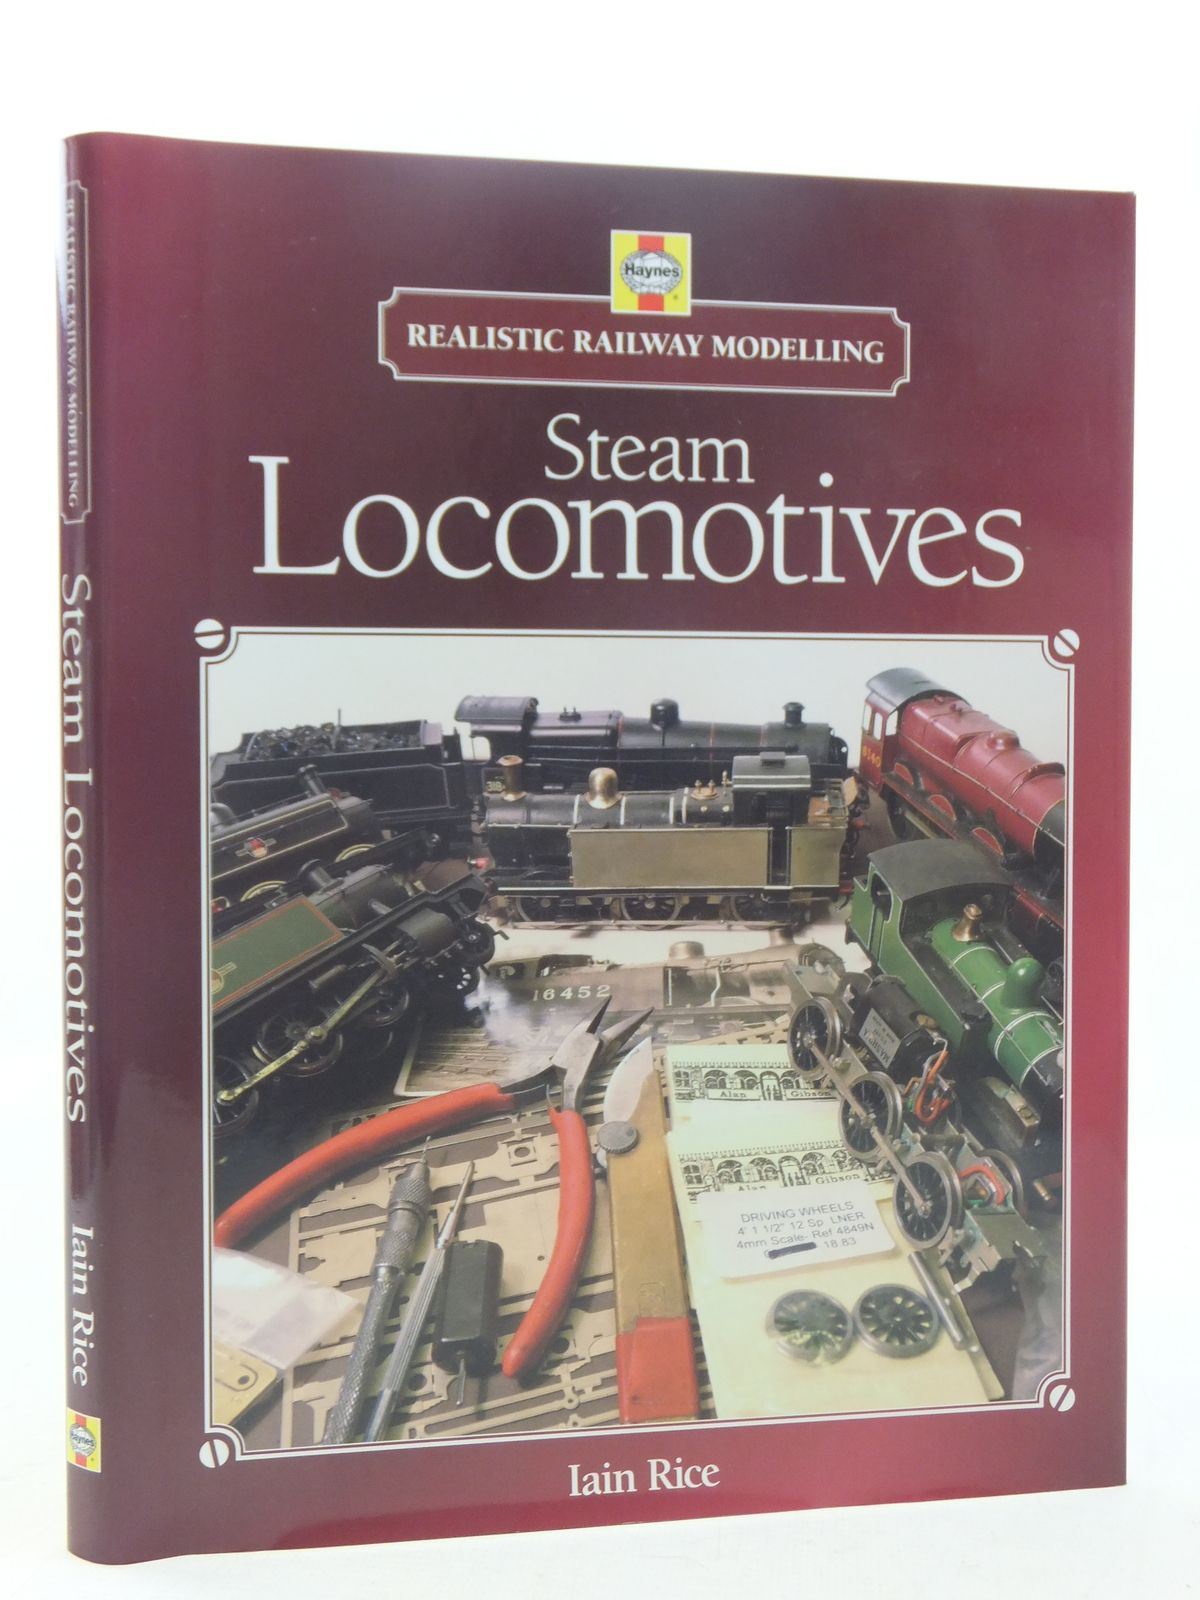 Photo of STEAM LOCOMOTIVES - REALISTIC RAILWAY MODELLING written by Rice, Iain published by Haynes (STOCK CODE: 1607293)  for sale by Stella & Rose's Books